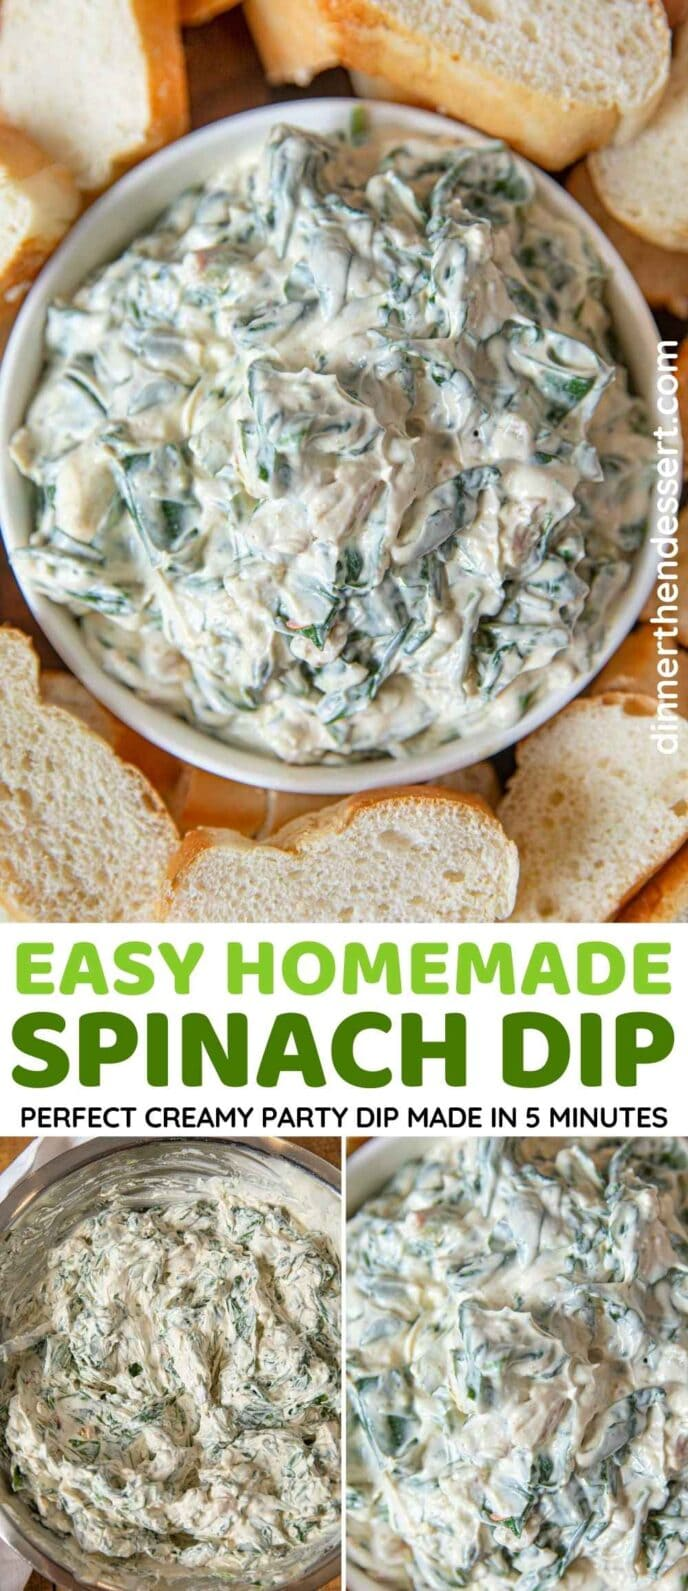 Easy Spinach Dip Collage